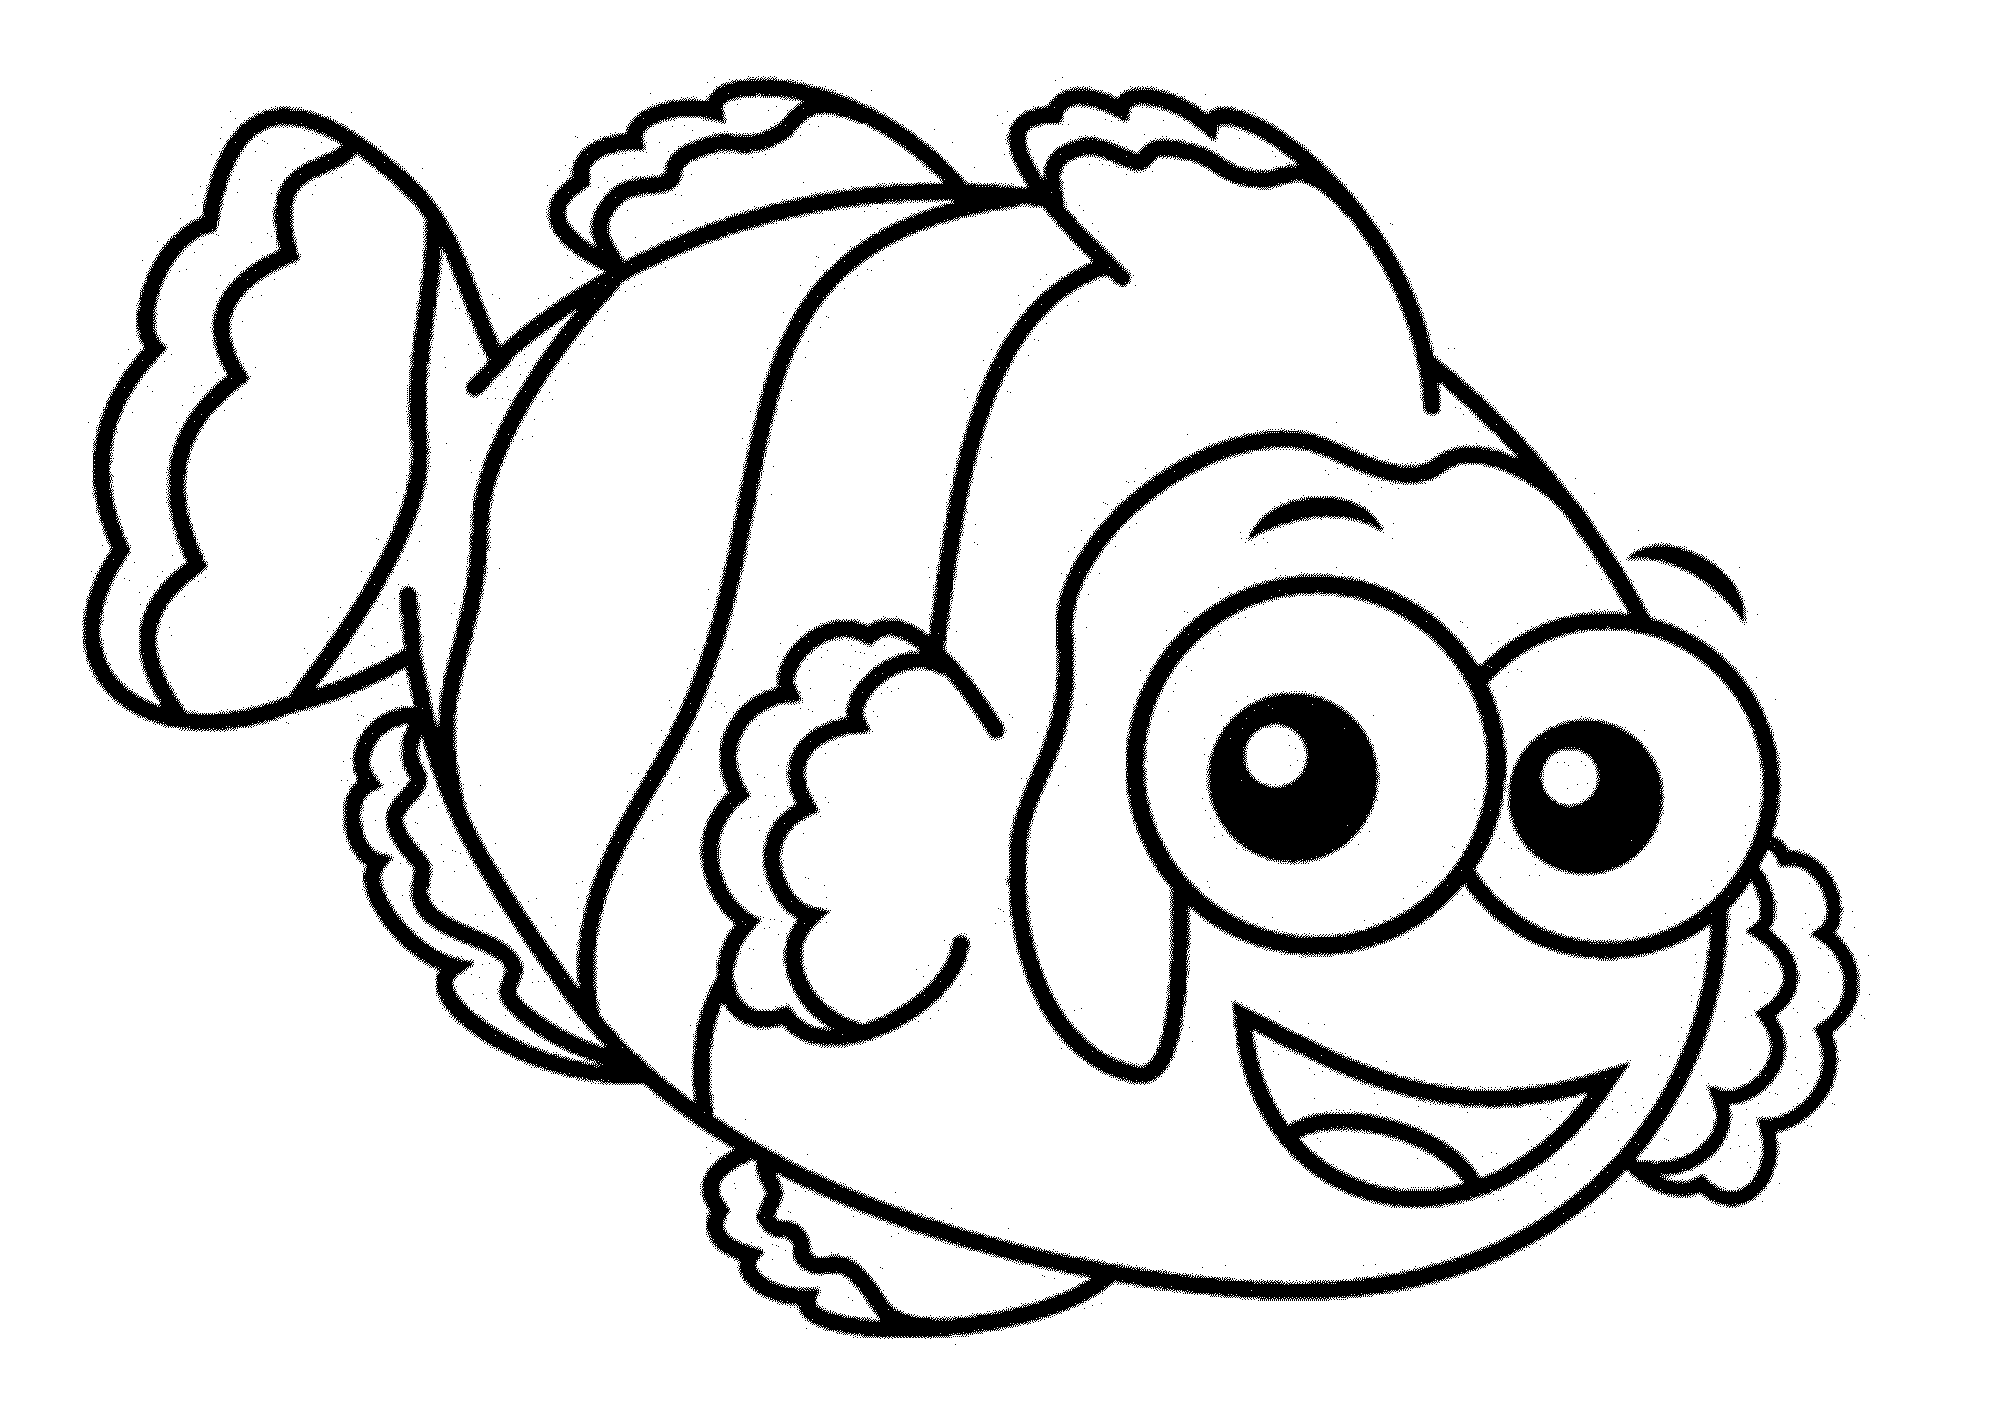 coloring pages for fish natchitoches national fish hatchery coloring pages for fish